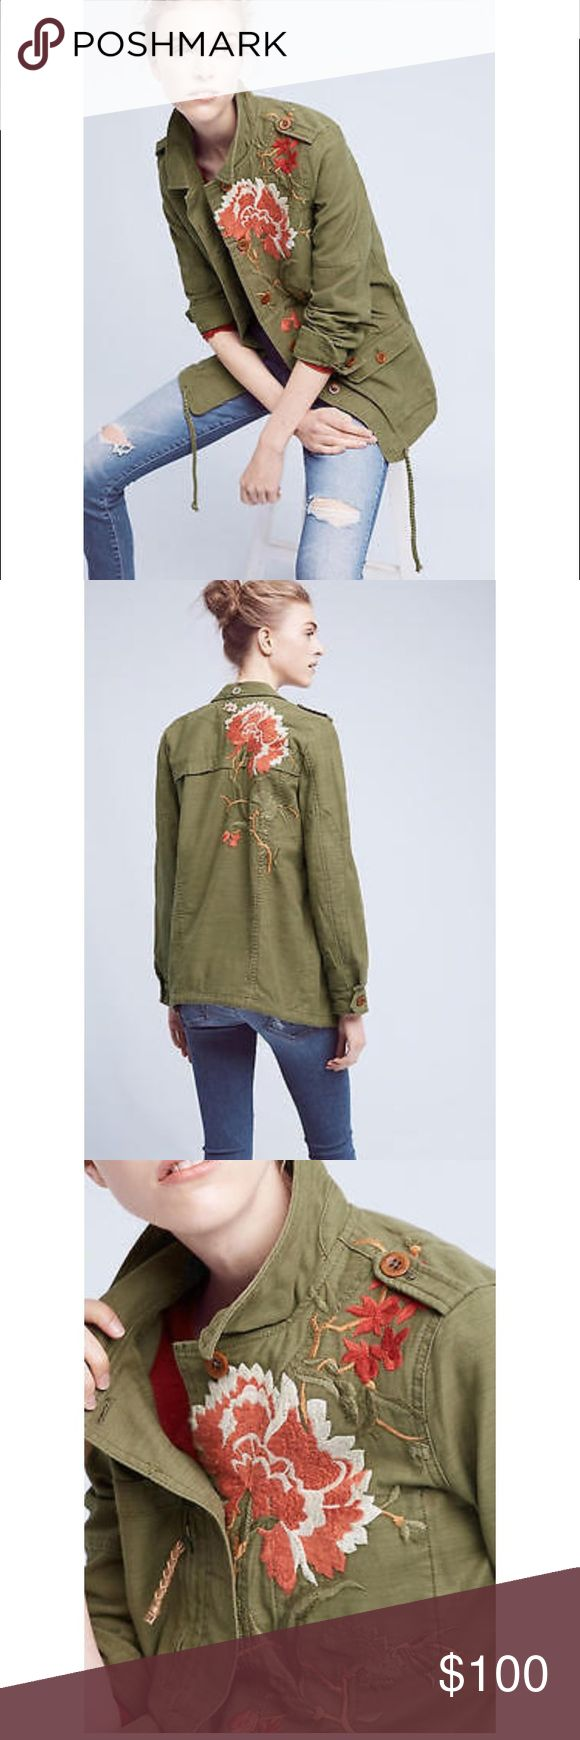 Anthropologie Embroidered Field Jacket  By Hei Hei This jacket has amazing reviews and was sold out instantly... I love unique pieces, and I love when nobody else has them.., today I saw 3 people wearing this jacket, I guess it is pretty popular in San Francisco... and I decided to sell it. I wore it maybe twice. It's like new, perfect condition. Price firm, no trades.  o   Embroidery detail o   Front pockets o   Button front o   Machine wash o   Cotton ·         Dimensions  ·…